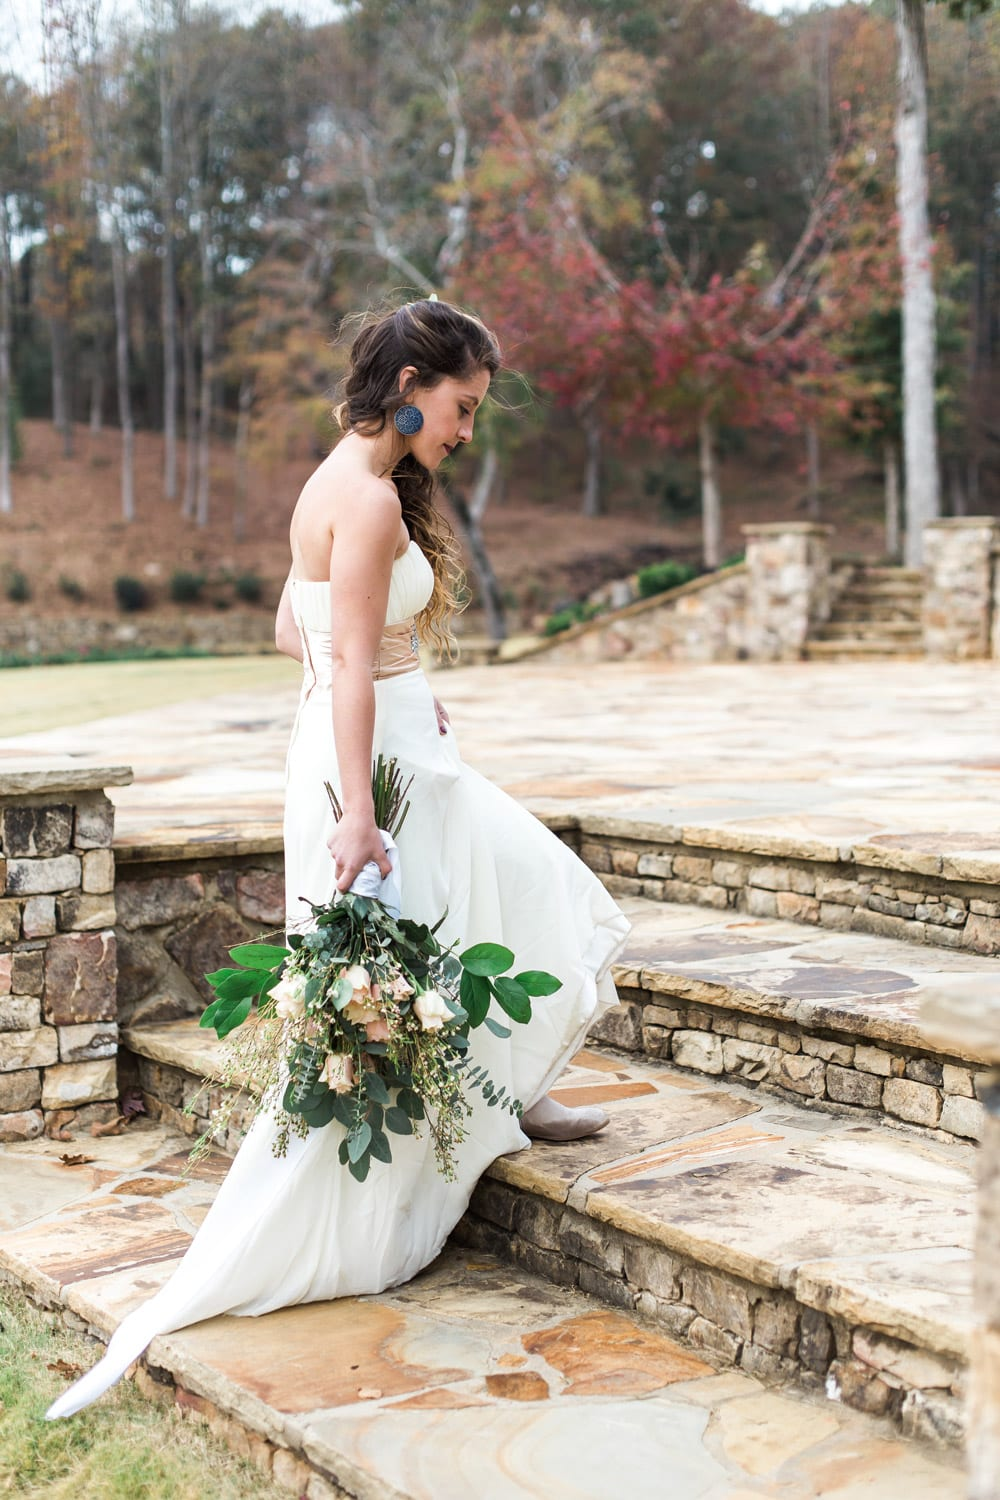 Bride walks with flowers on stone patio